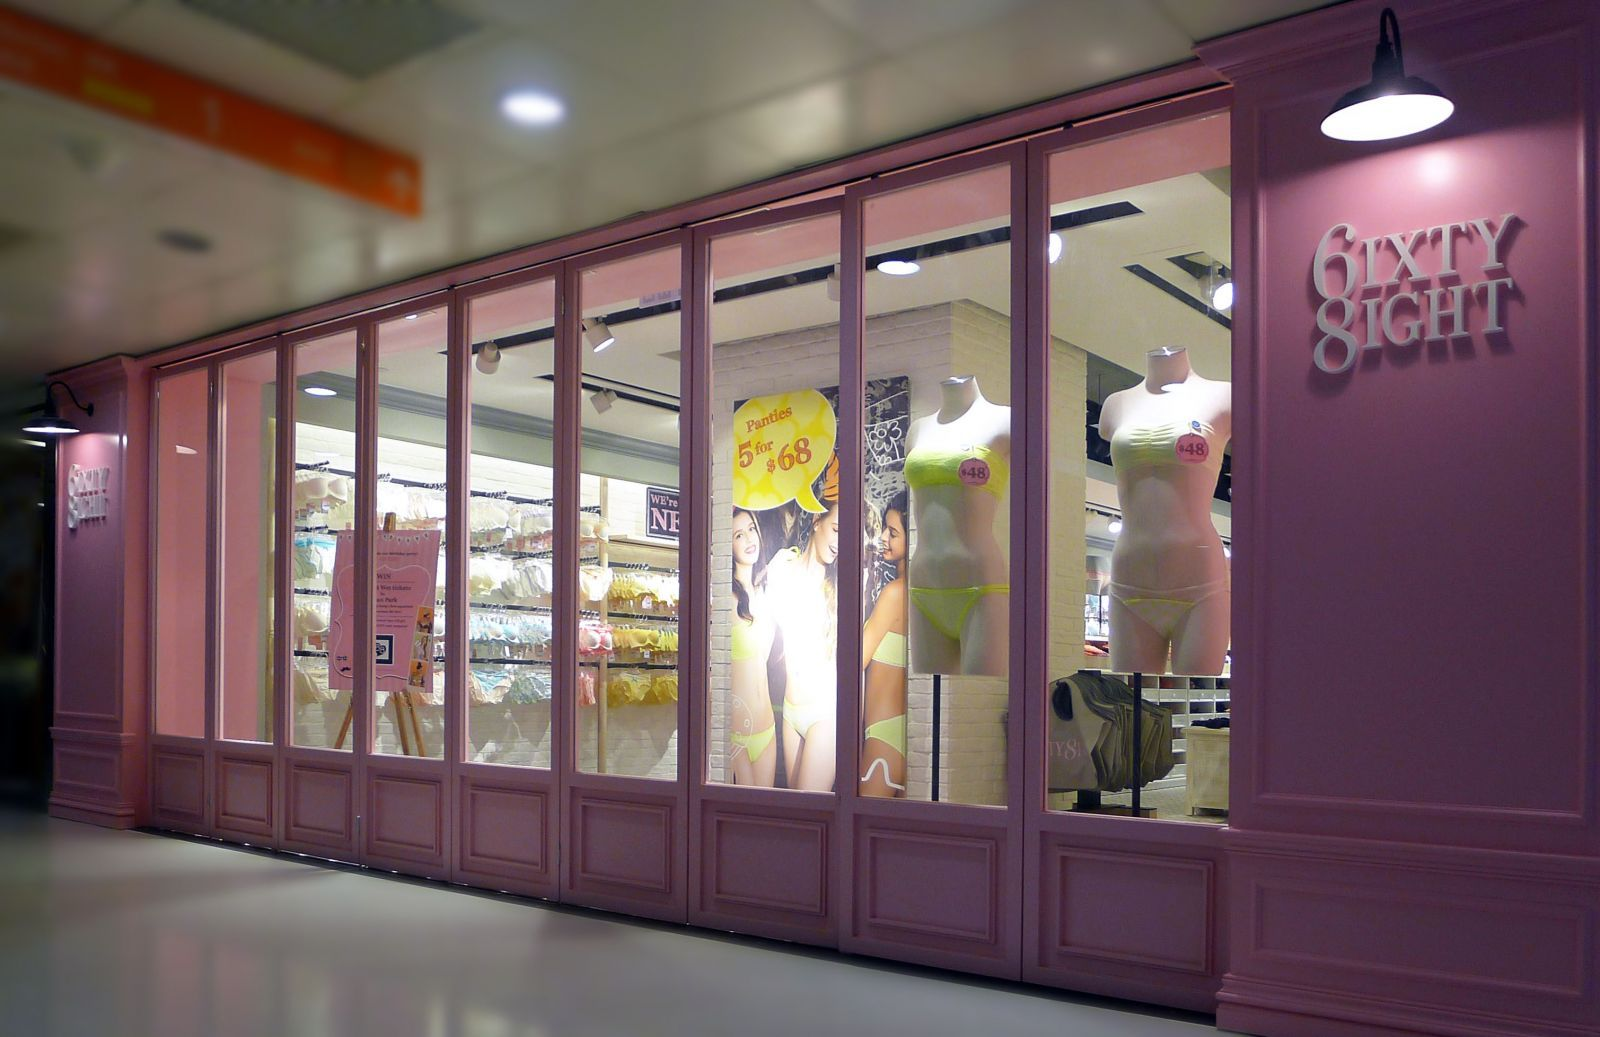 retail store | 6IXTY 8IGHT | Pinterest | Store and Retail